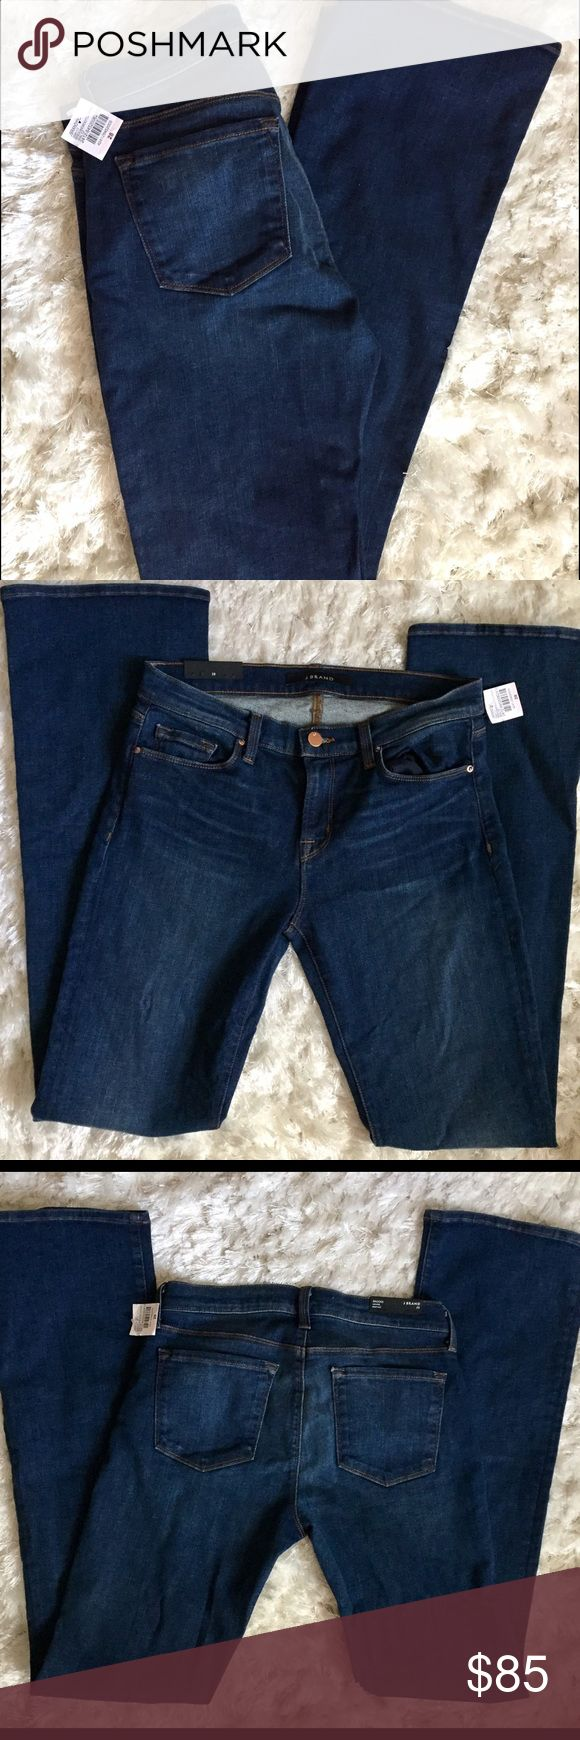 💚 NWT J brand jeans size 28 Stretchy size 28 j brand jeans. Never worn new with tags. Awesome color! J Brand Jeans Boot Cut